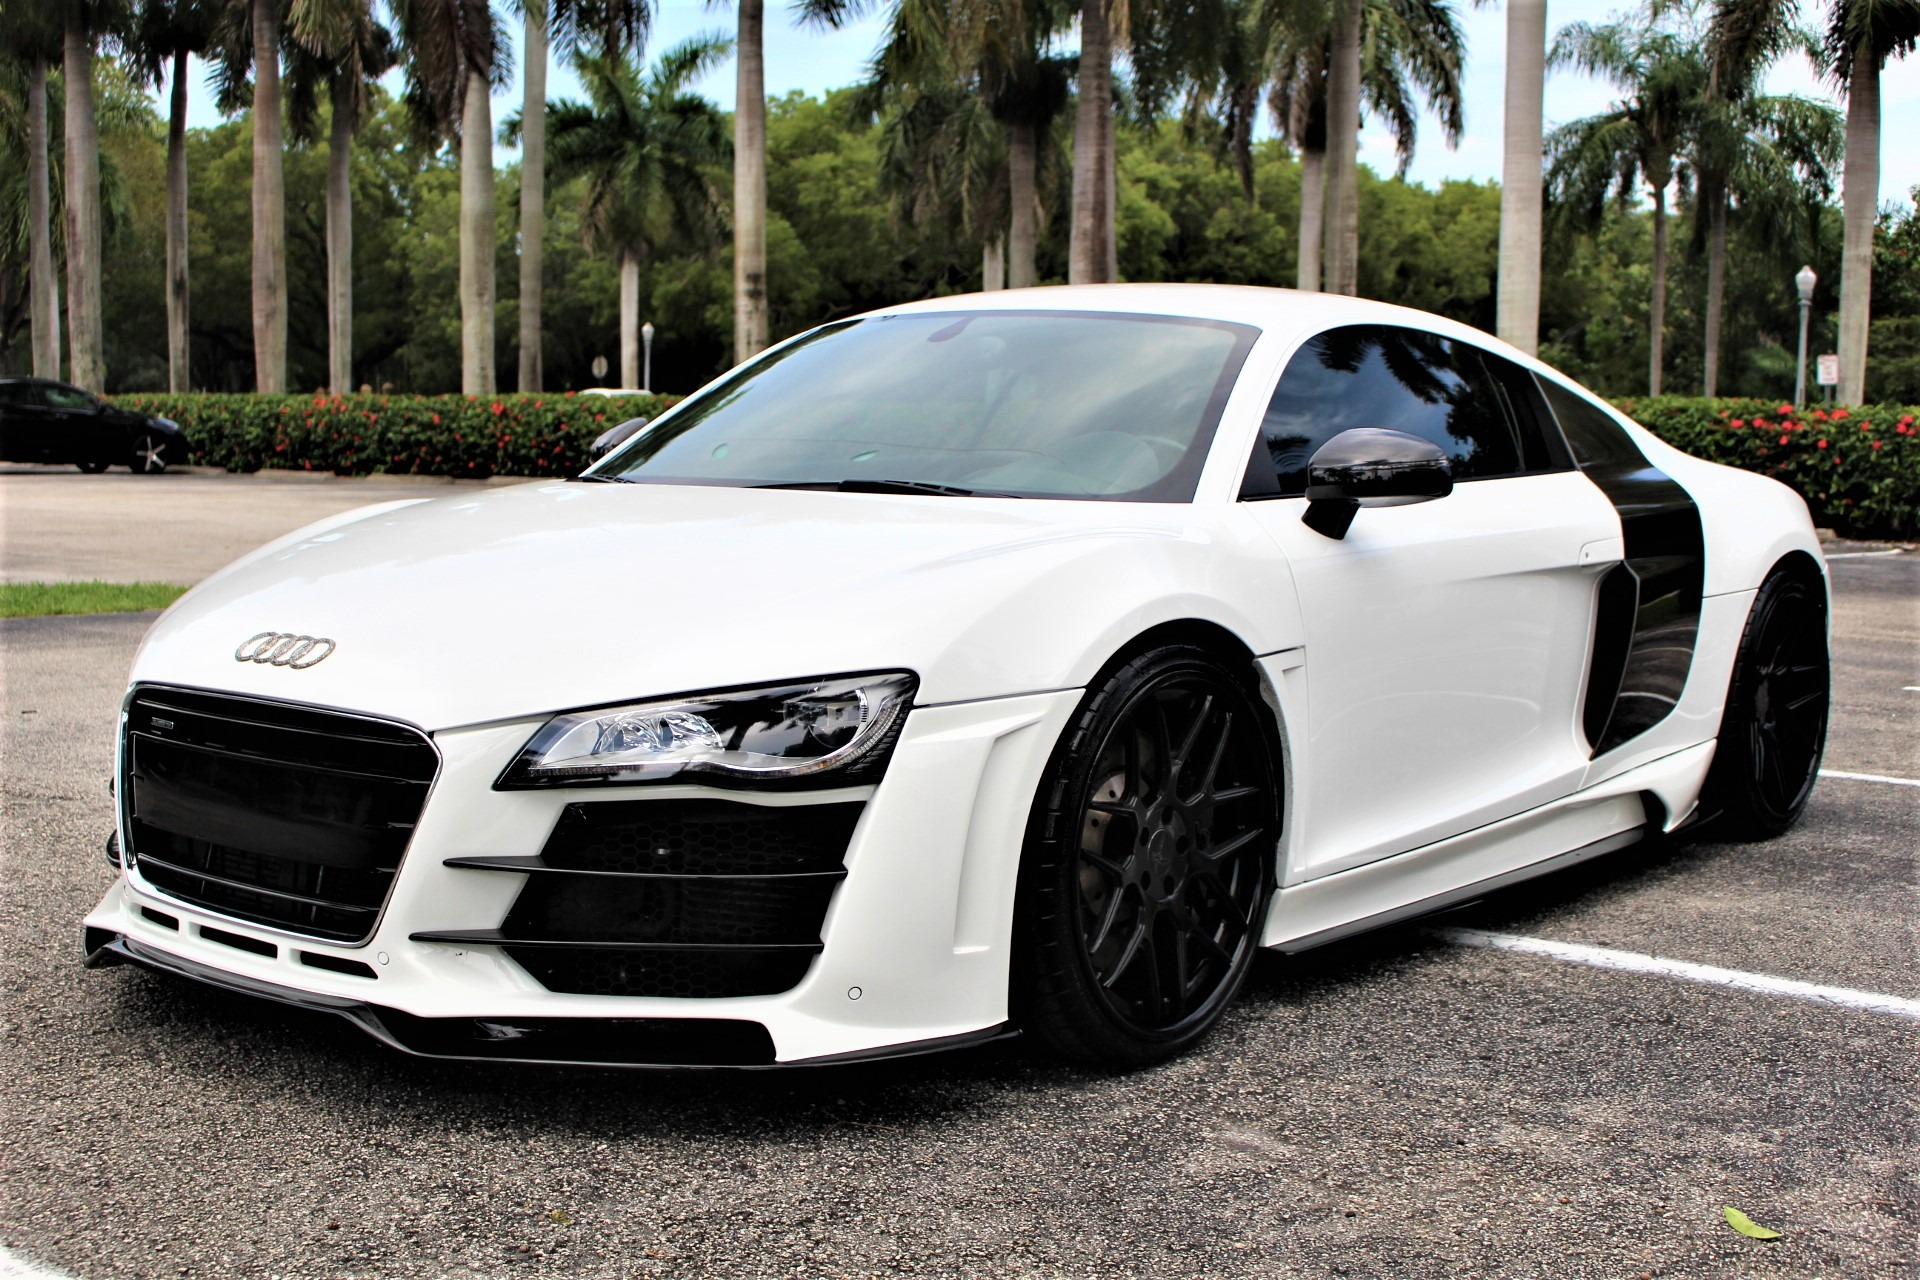 Used 2010 Audi R8 5.2 quattro for sale Sold at The Gables Sports Cars in Miami FL 33146 2